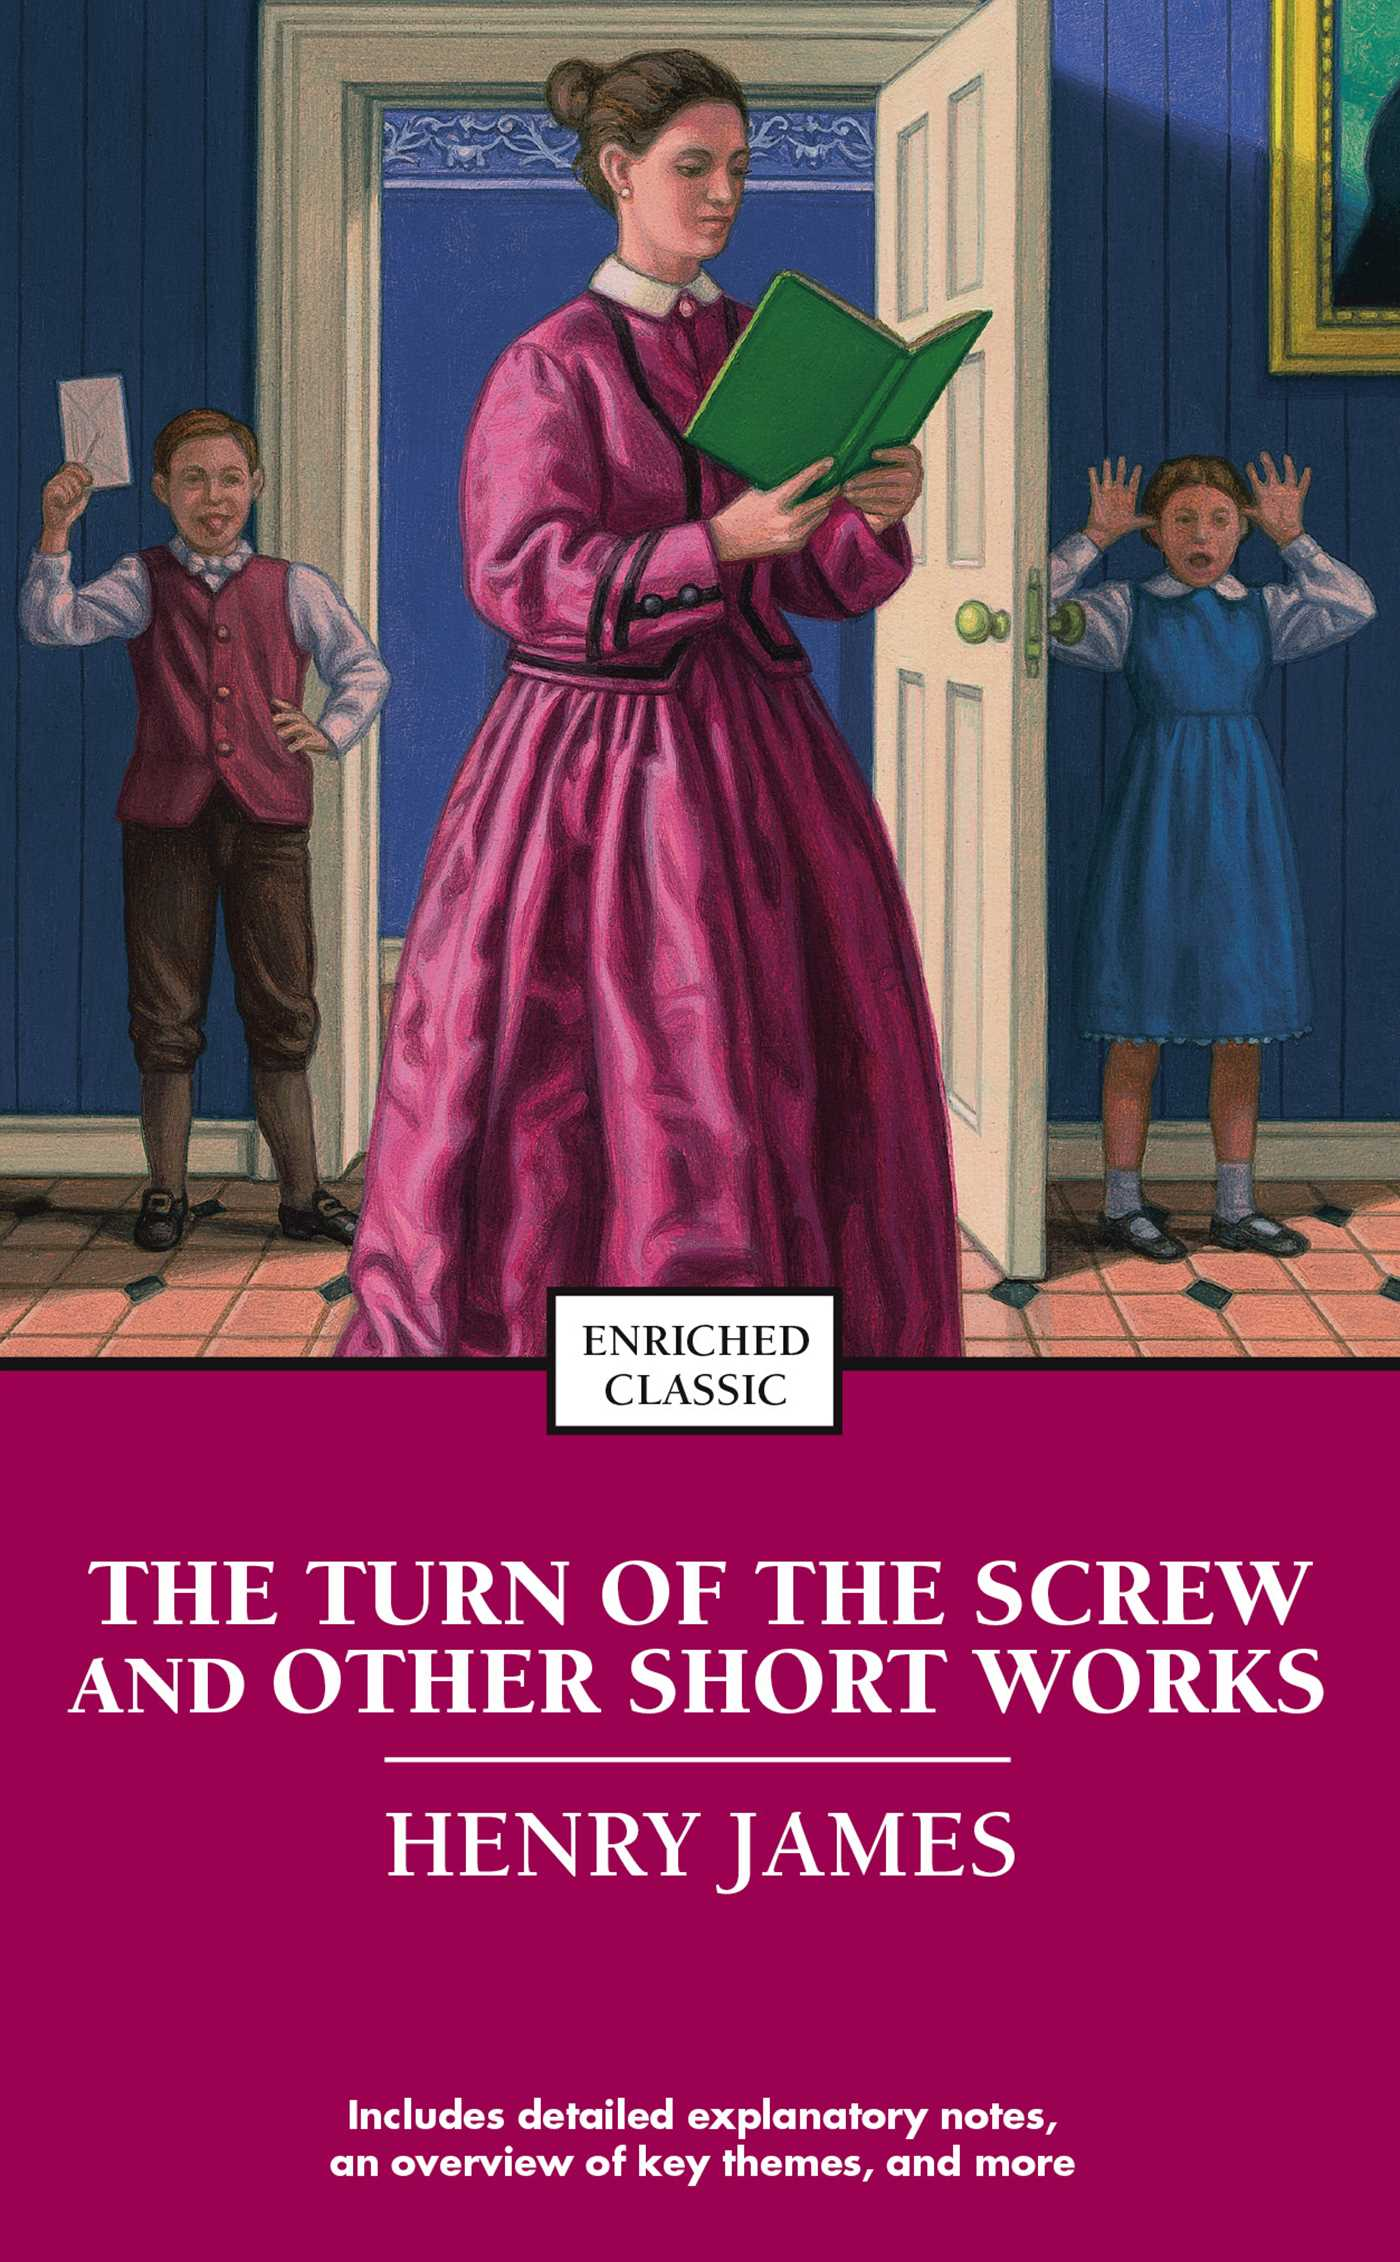 The-turn-of-the-screw-and-other-short-works-9781451686340_hr